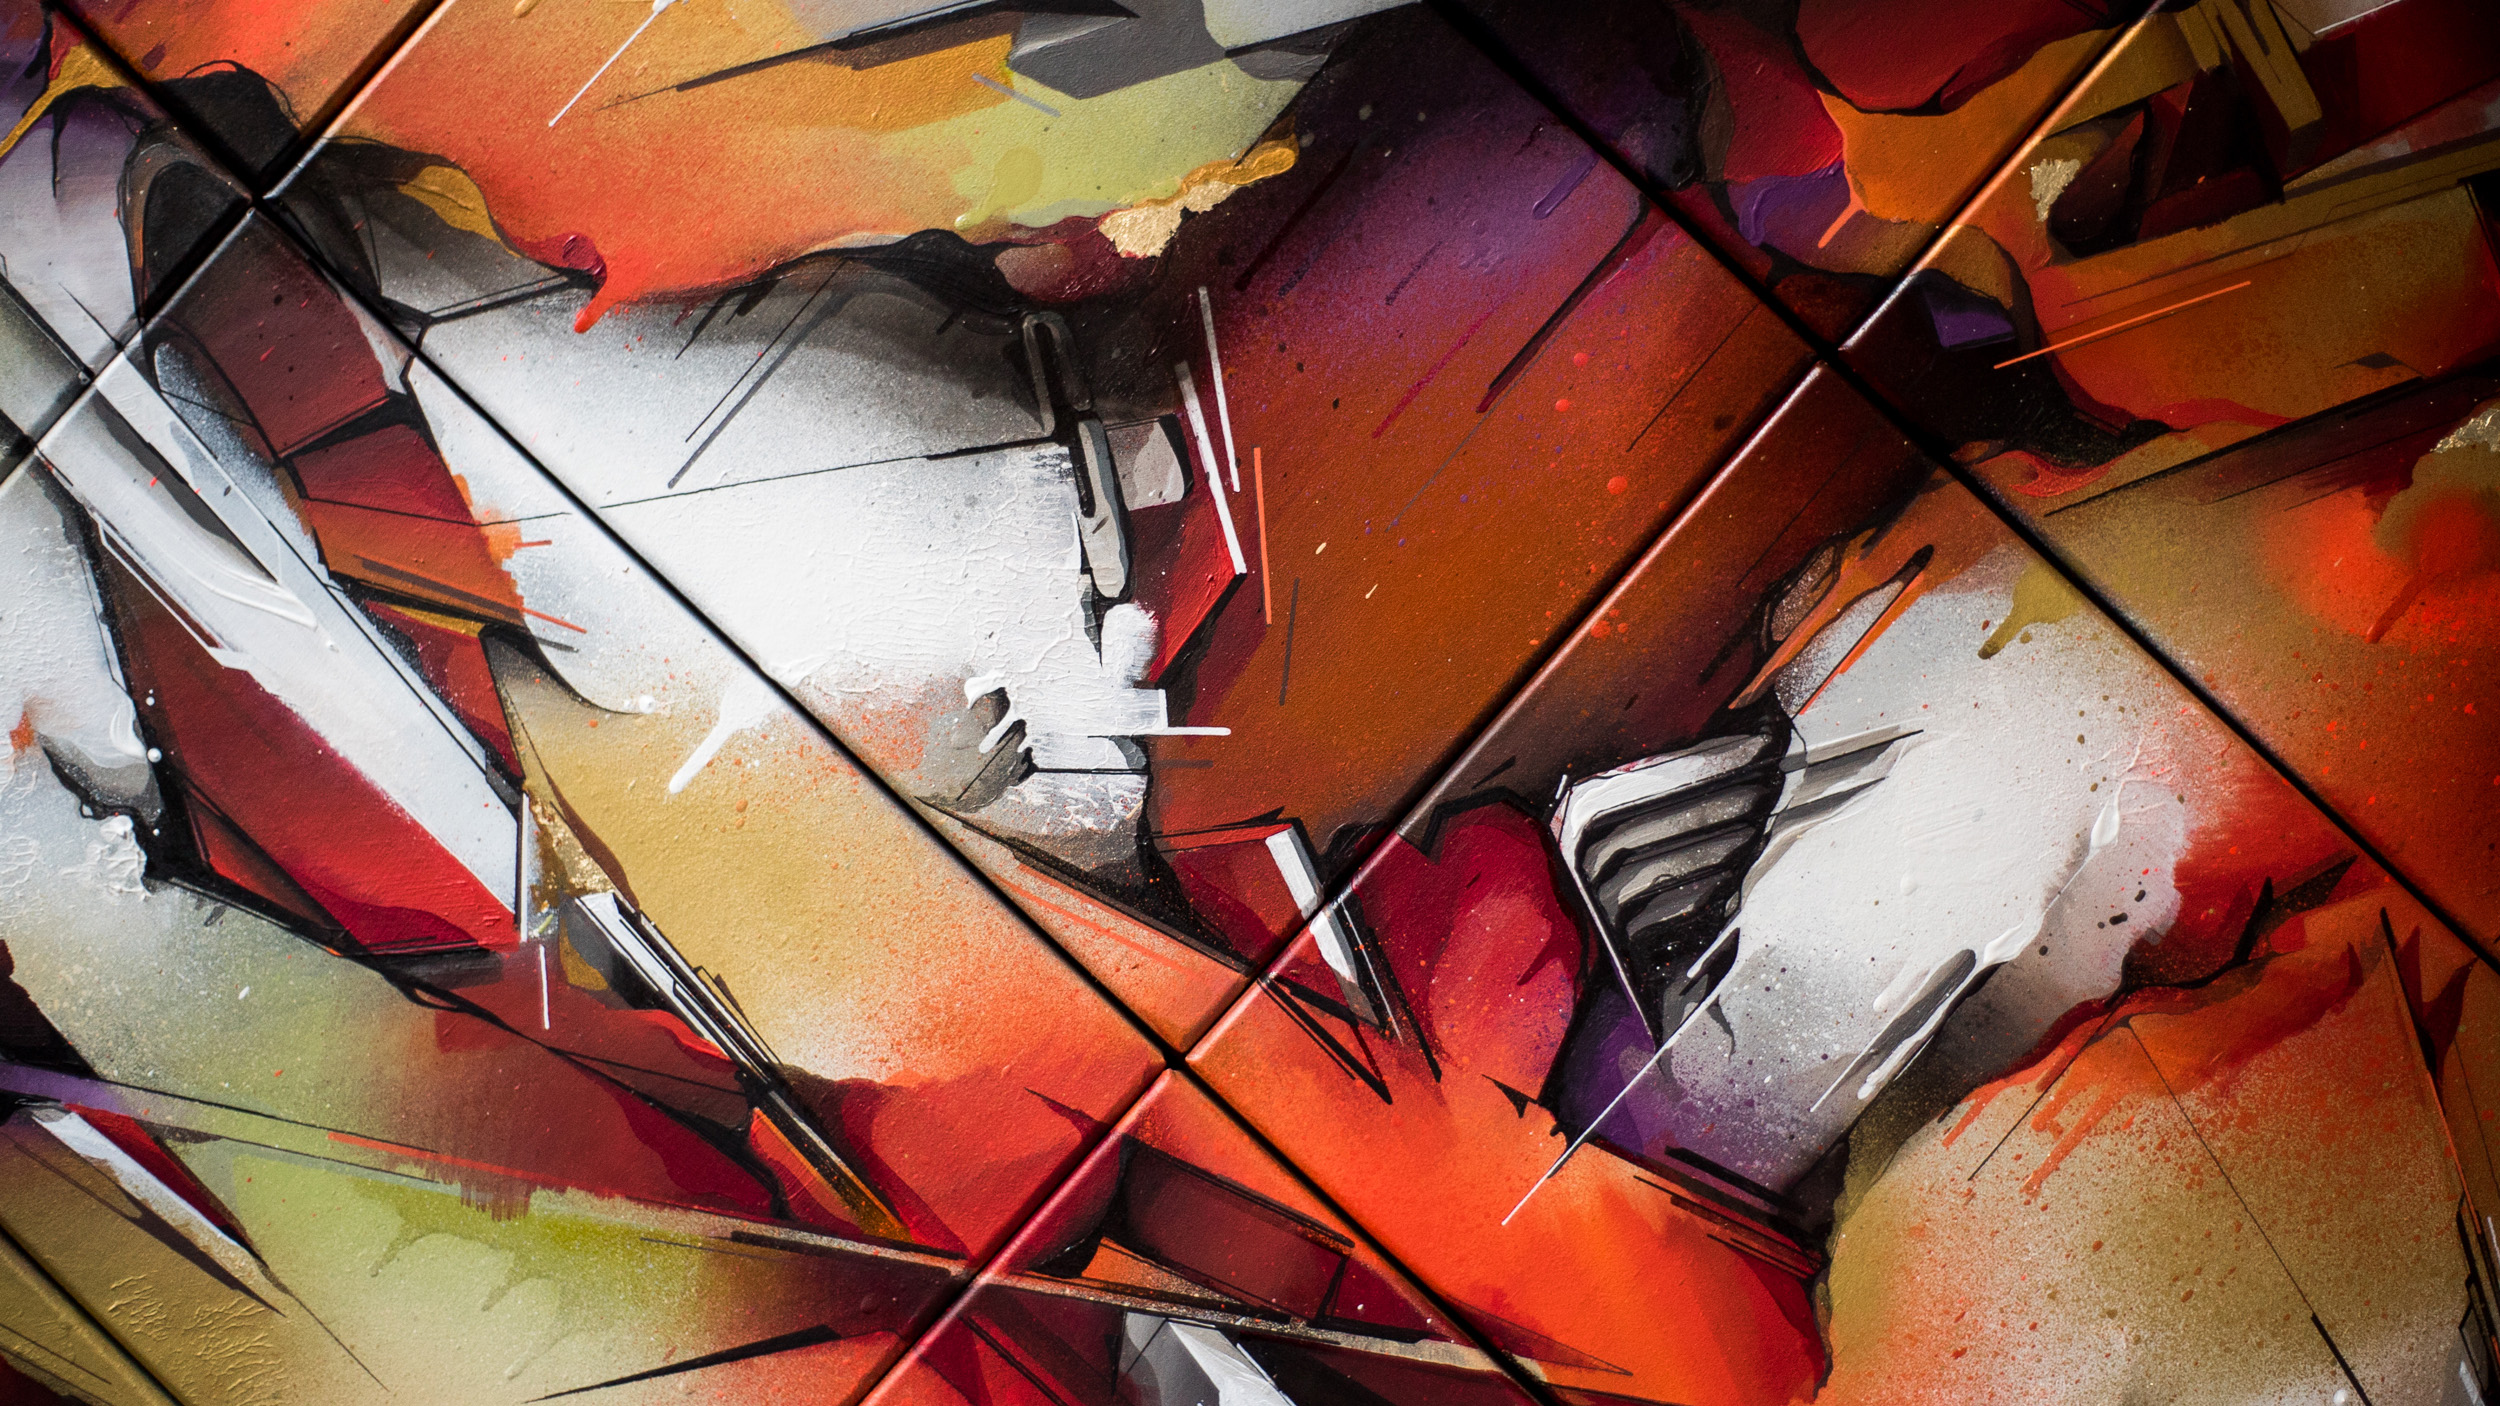 A work by Does - Qui facit creat deluxe edition detail 1